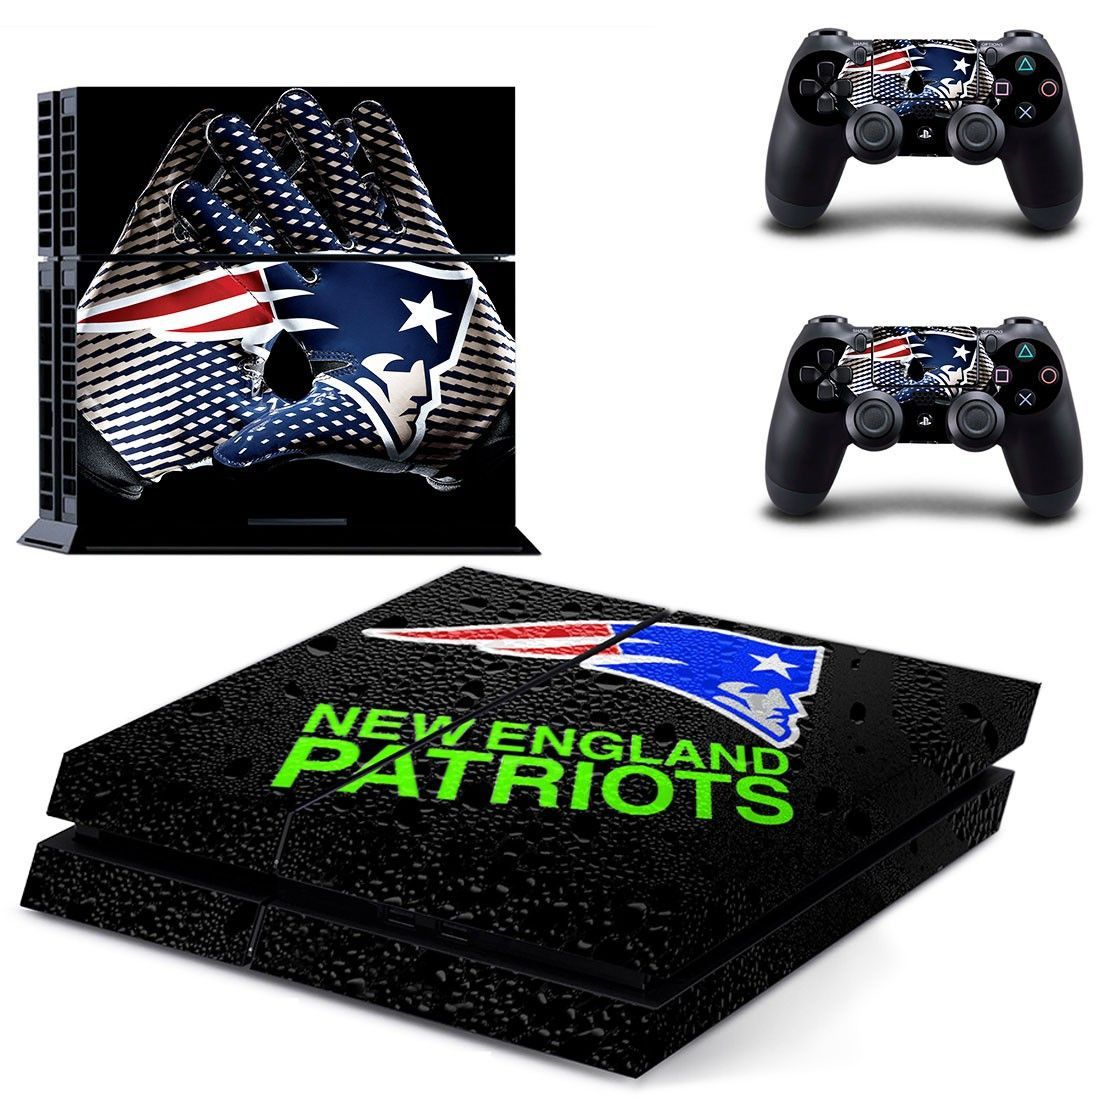 New England Patriots Ps4 Skin Decal For Console And Controllers Ps4 Skins Patriots Playstation 4 Console